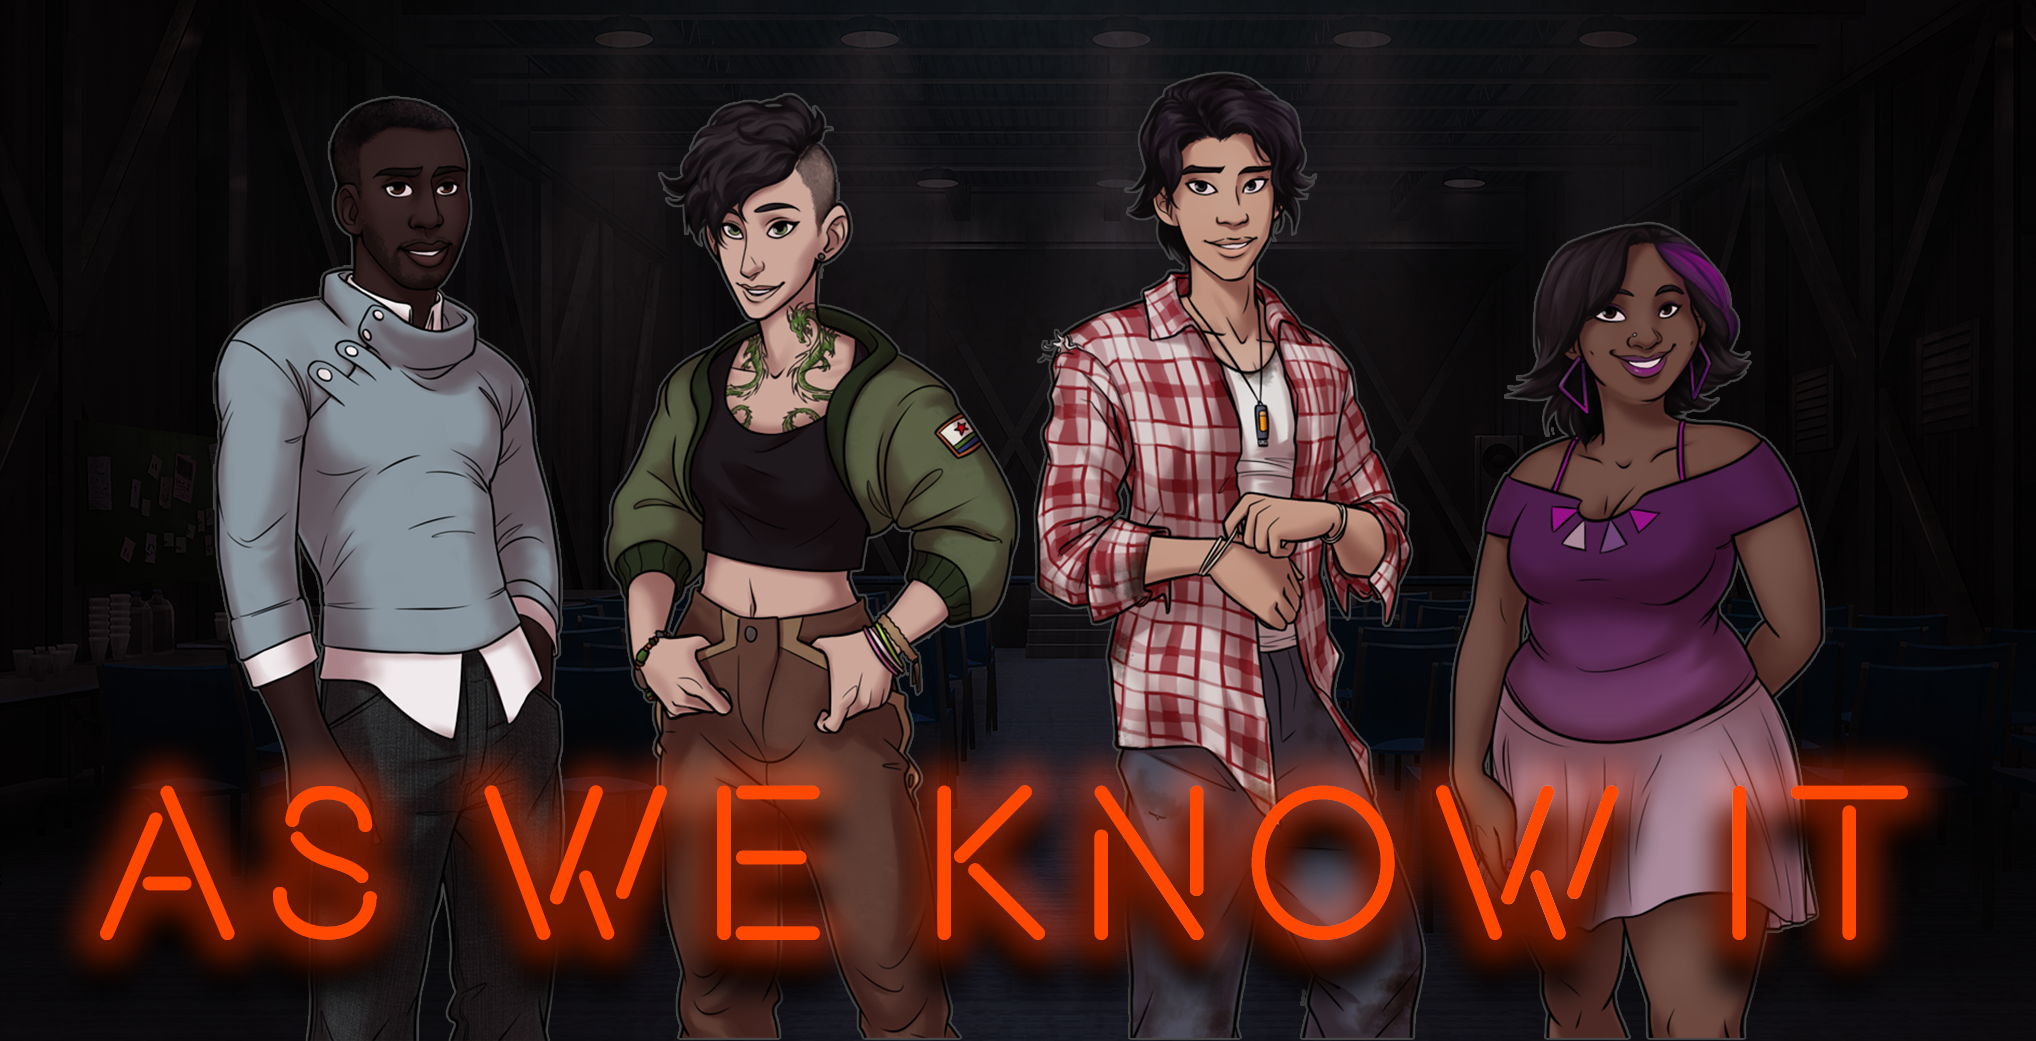 As We Know It Artbook and Wallpapers